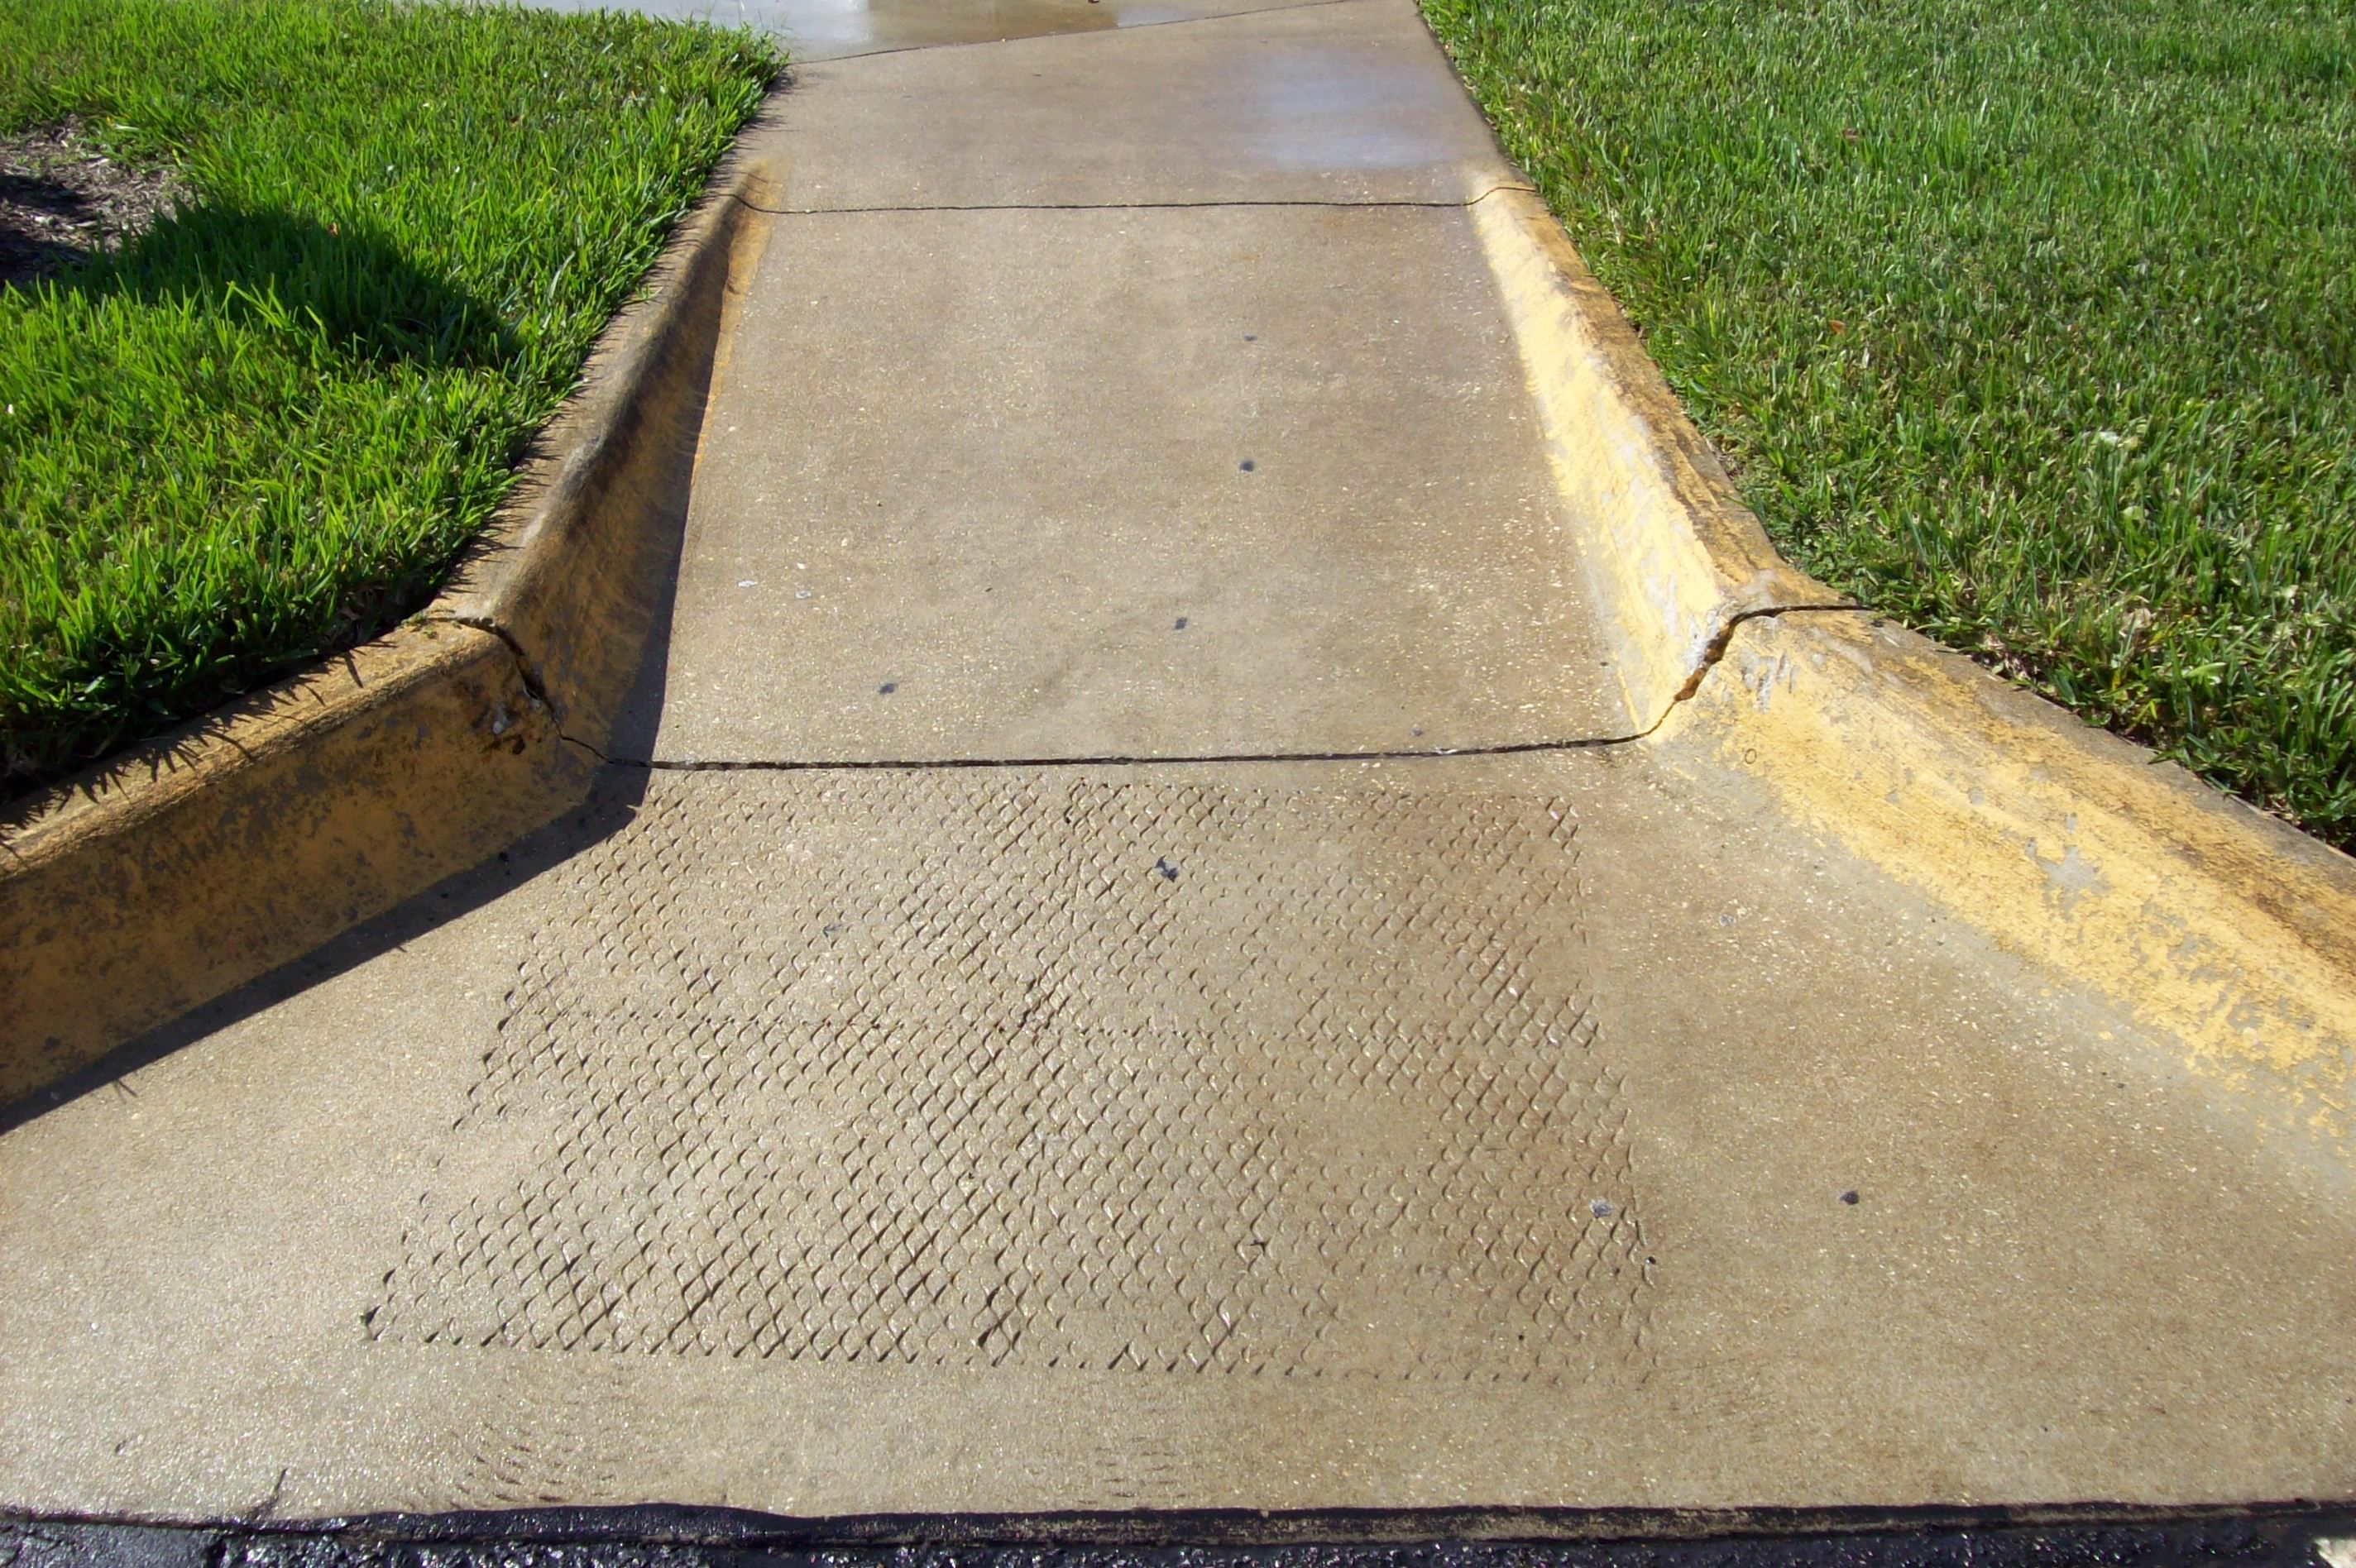 Before and After Pictures of a #PressureWashing Job at South Seminole Hospital by the CSGConSvcGrp Team! #PropertyMaintenance #CSGConSvcGrp